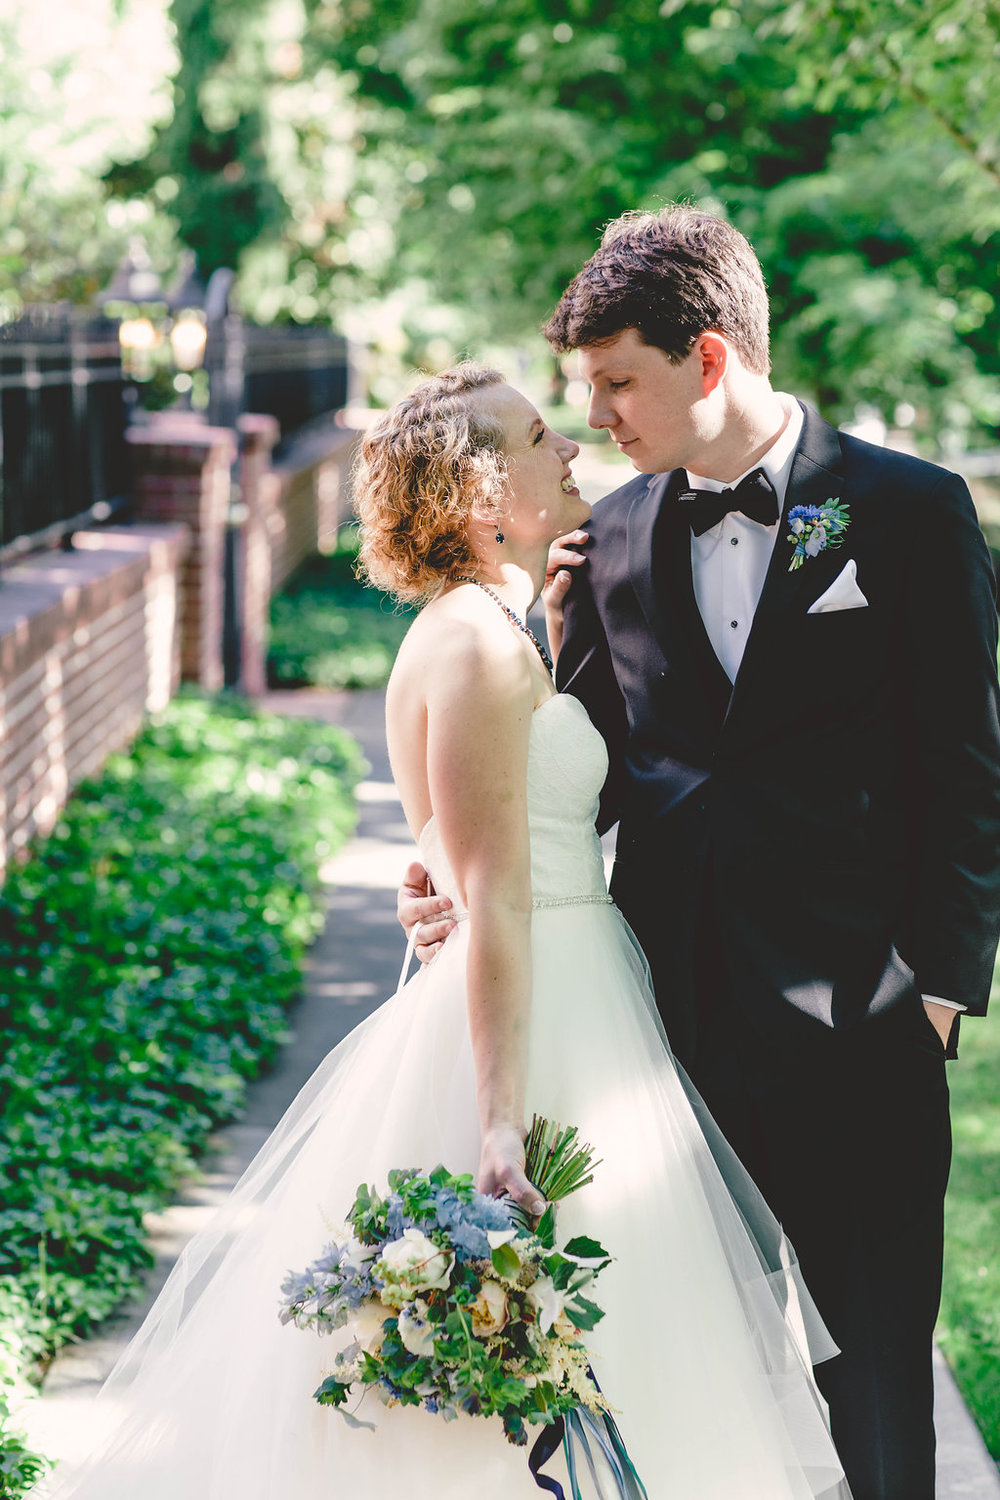 Nissa+Jesse_Wedding_Seattle_SoleRepairShop_6252015_230.jpg